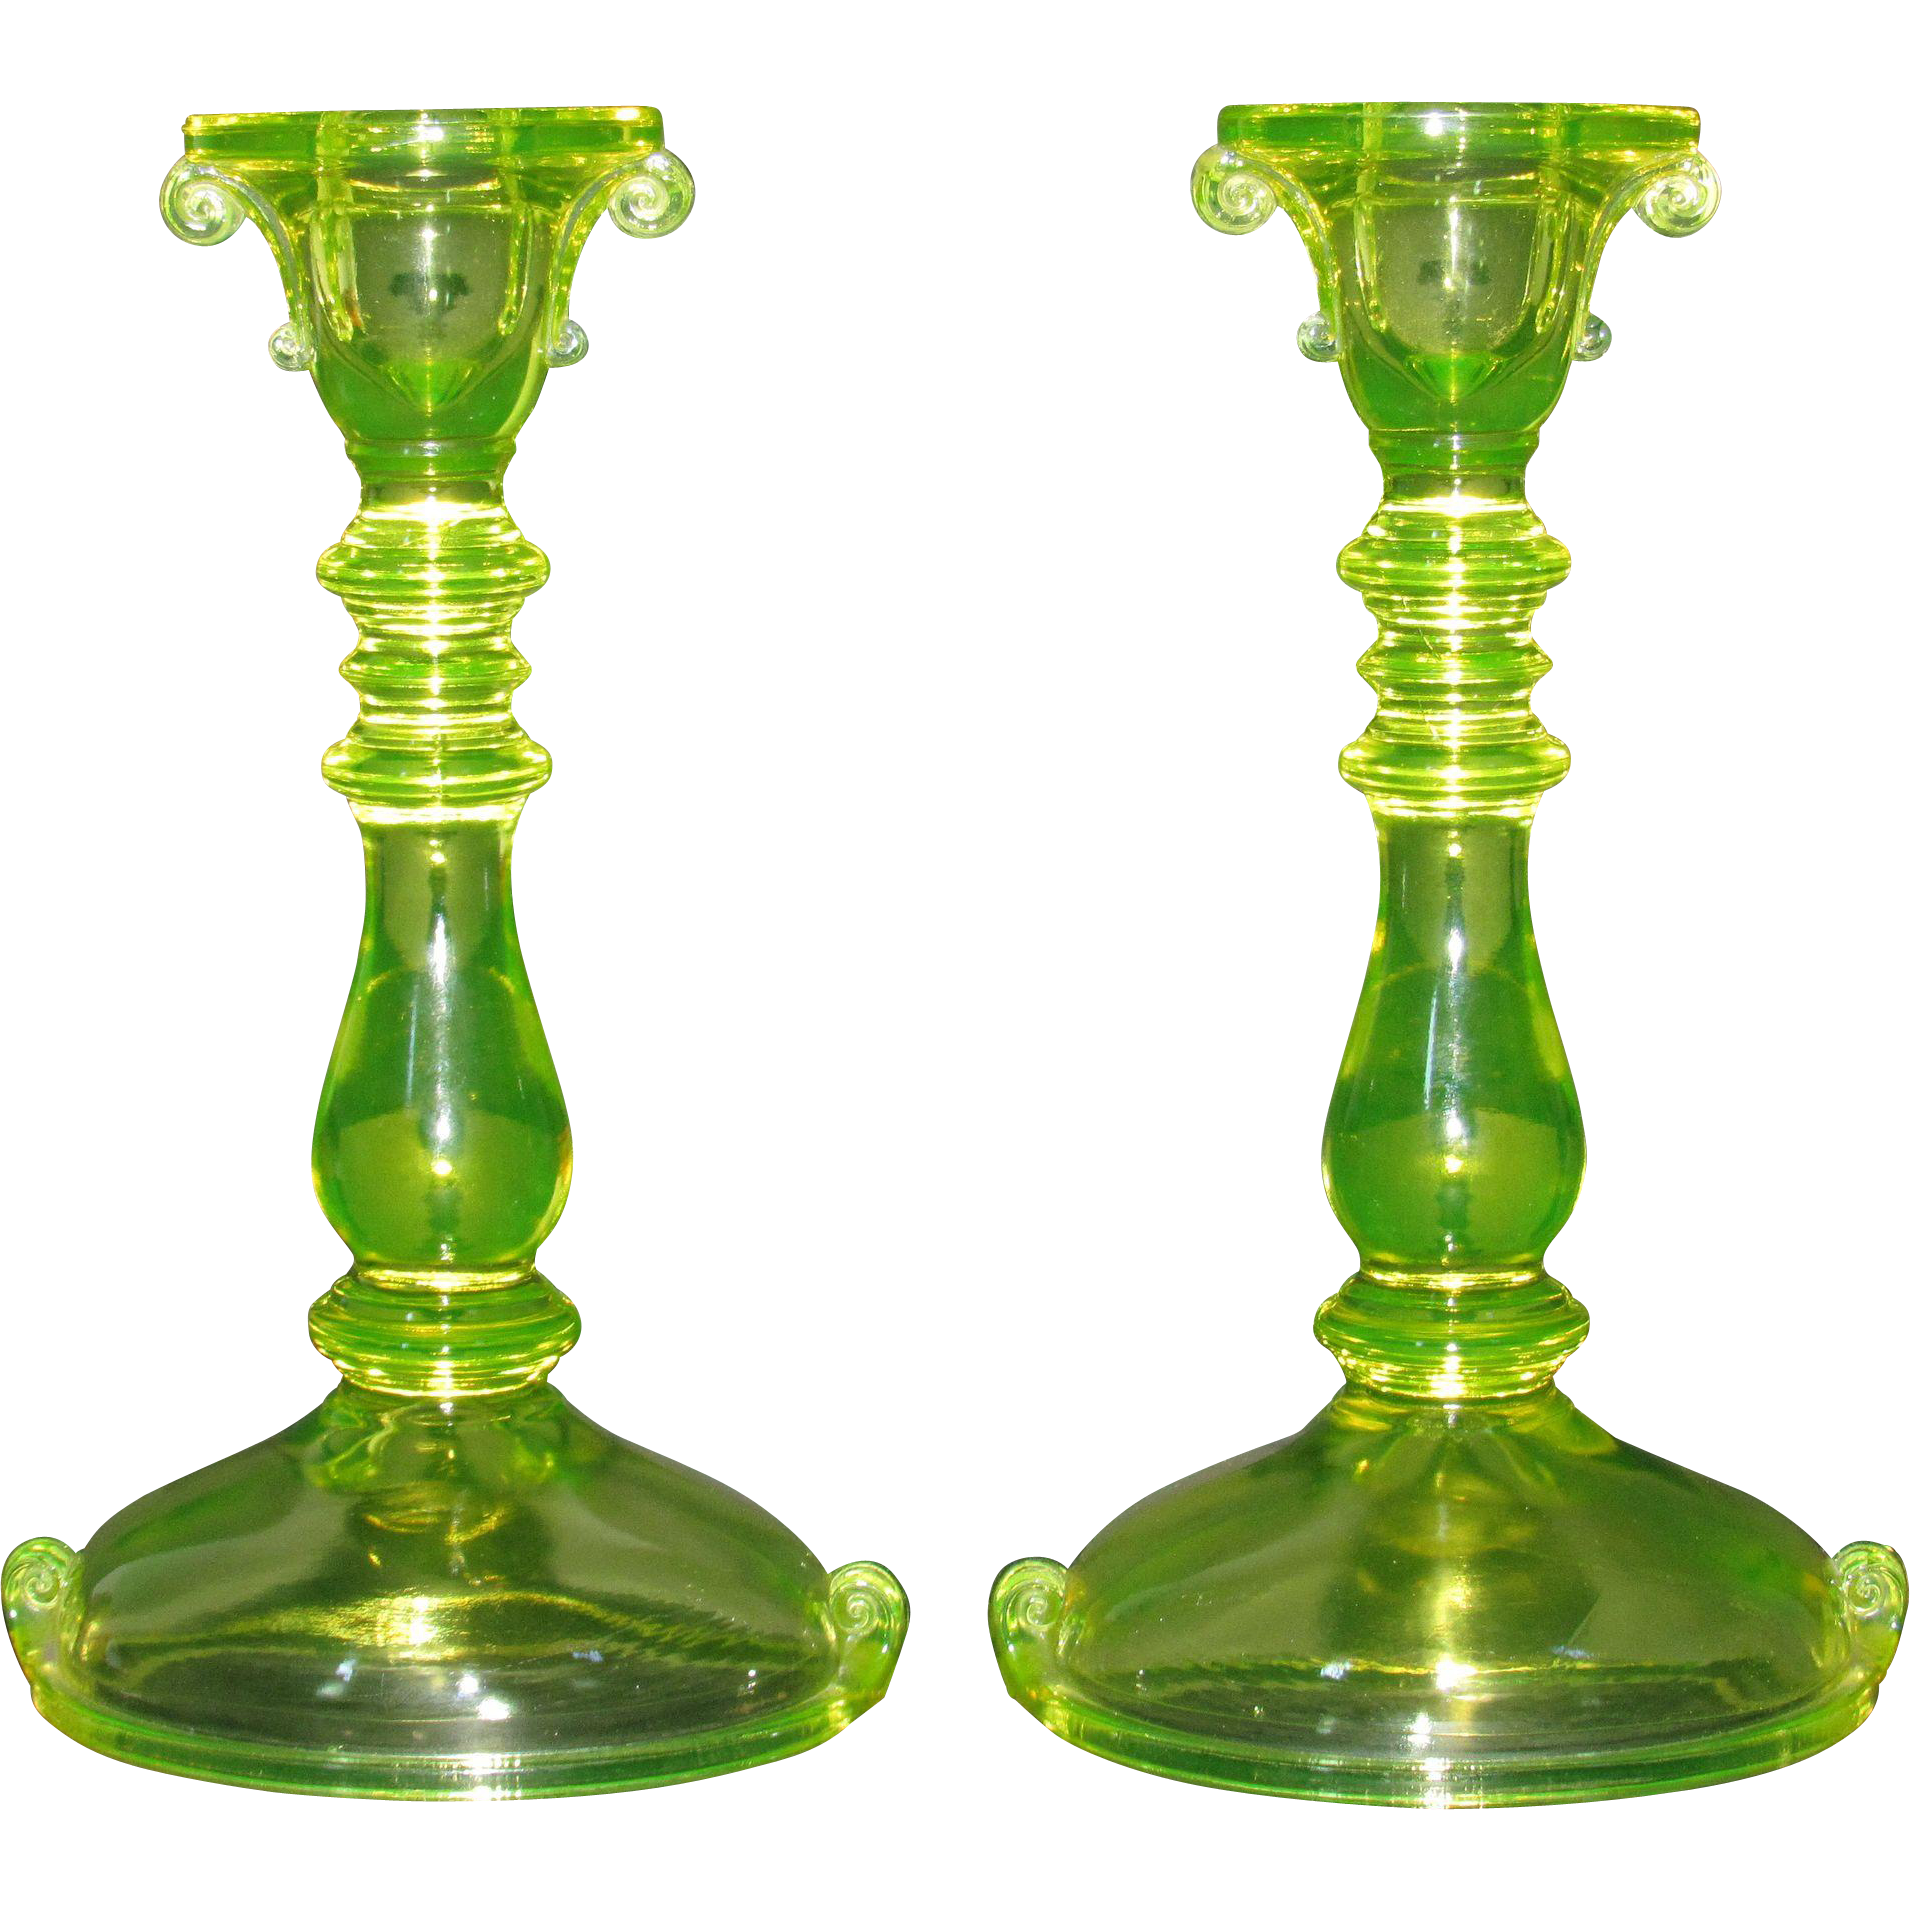 Imperial #320 Packard Candlesticks